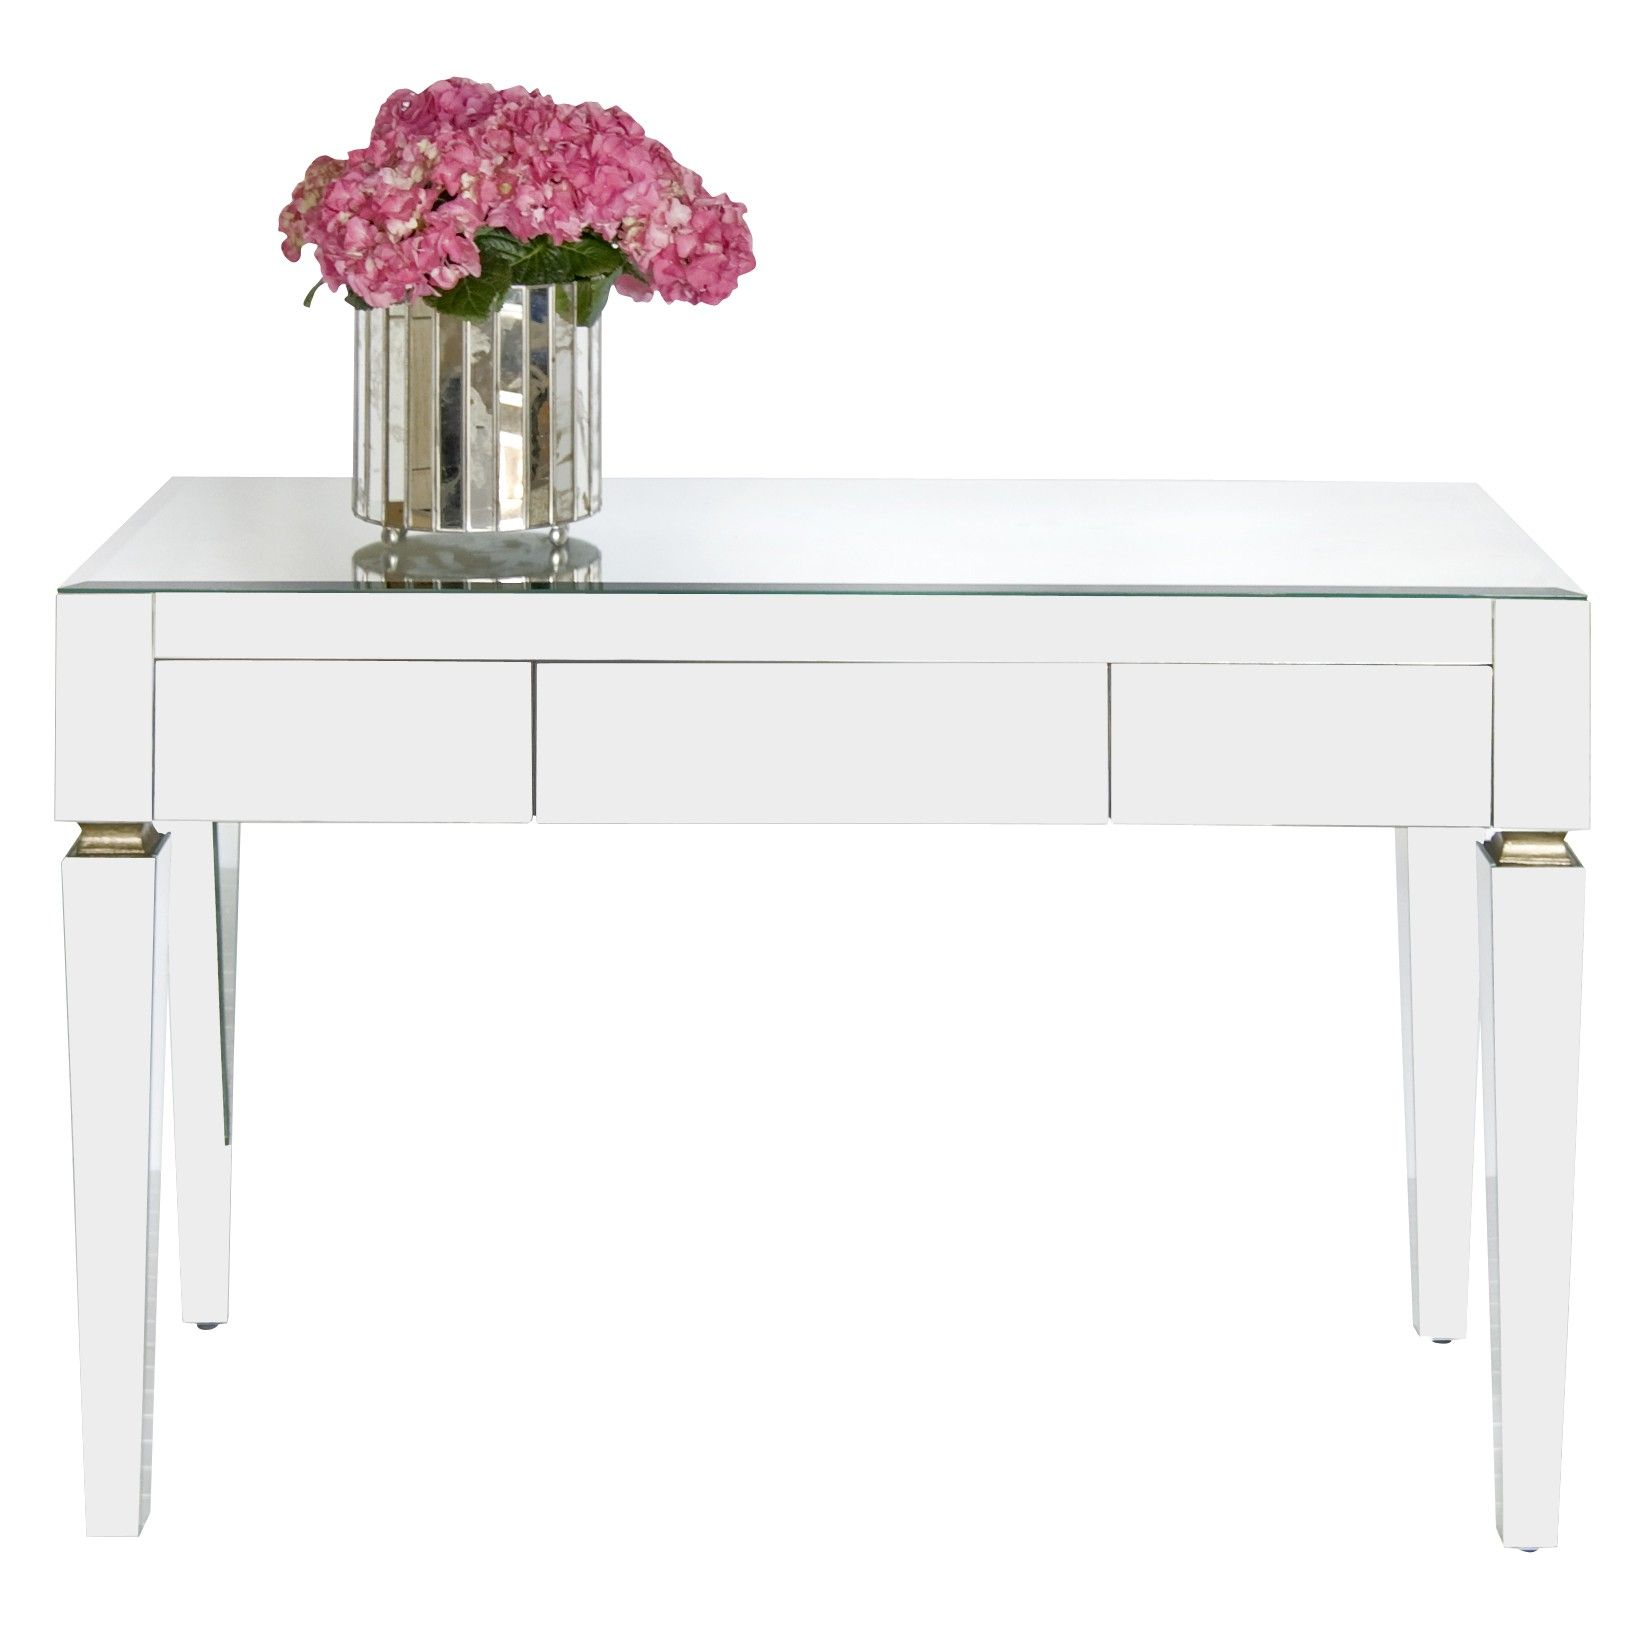 diy photo lights makeup beauty of vanity trendy desk products page with inspiring x mirror attached cosmetics or interior